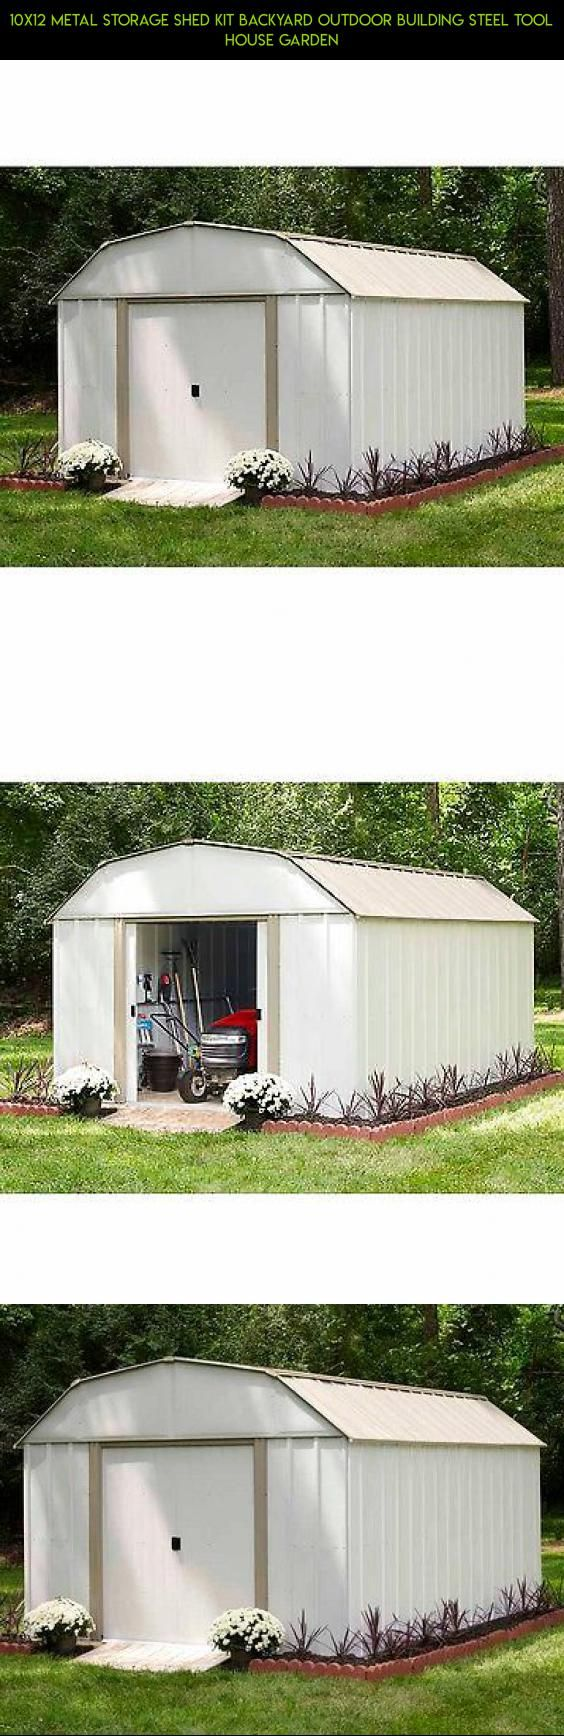 10x12 Metal Storage Shed Kit Backyard Outdoor Building Steel Tool House Garden #gadgets #drone #technology #parts #kit #racing #10x12 #sheds #storage #tech #fpv #& #shopping #outdoor #products #plans #camera